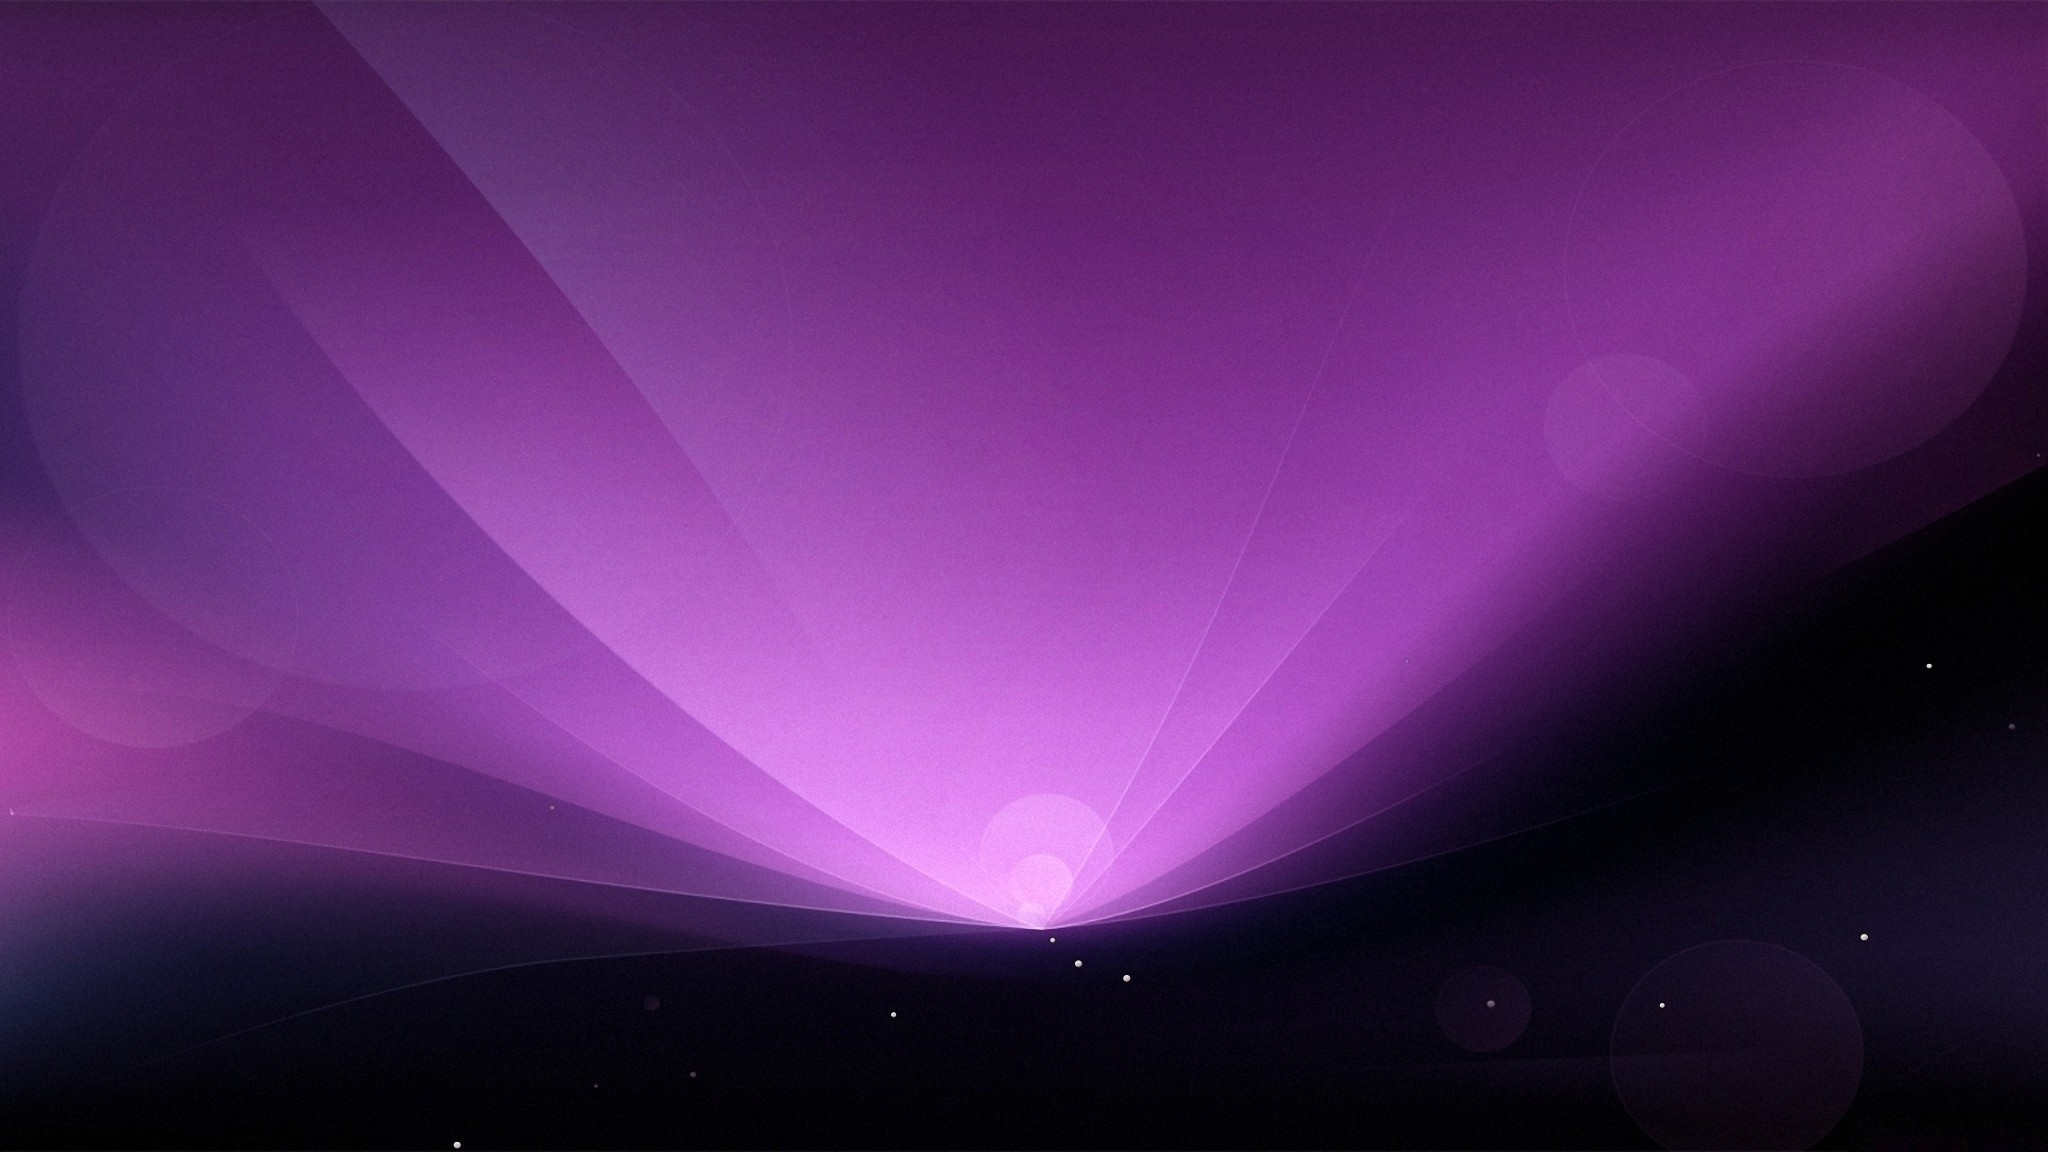 mac os x wallpapers hd - wallpapersafari